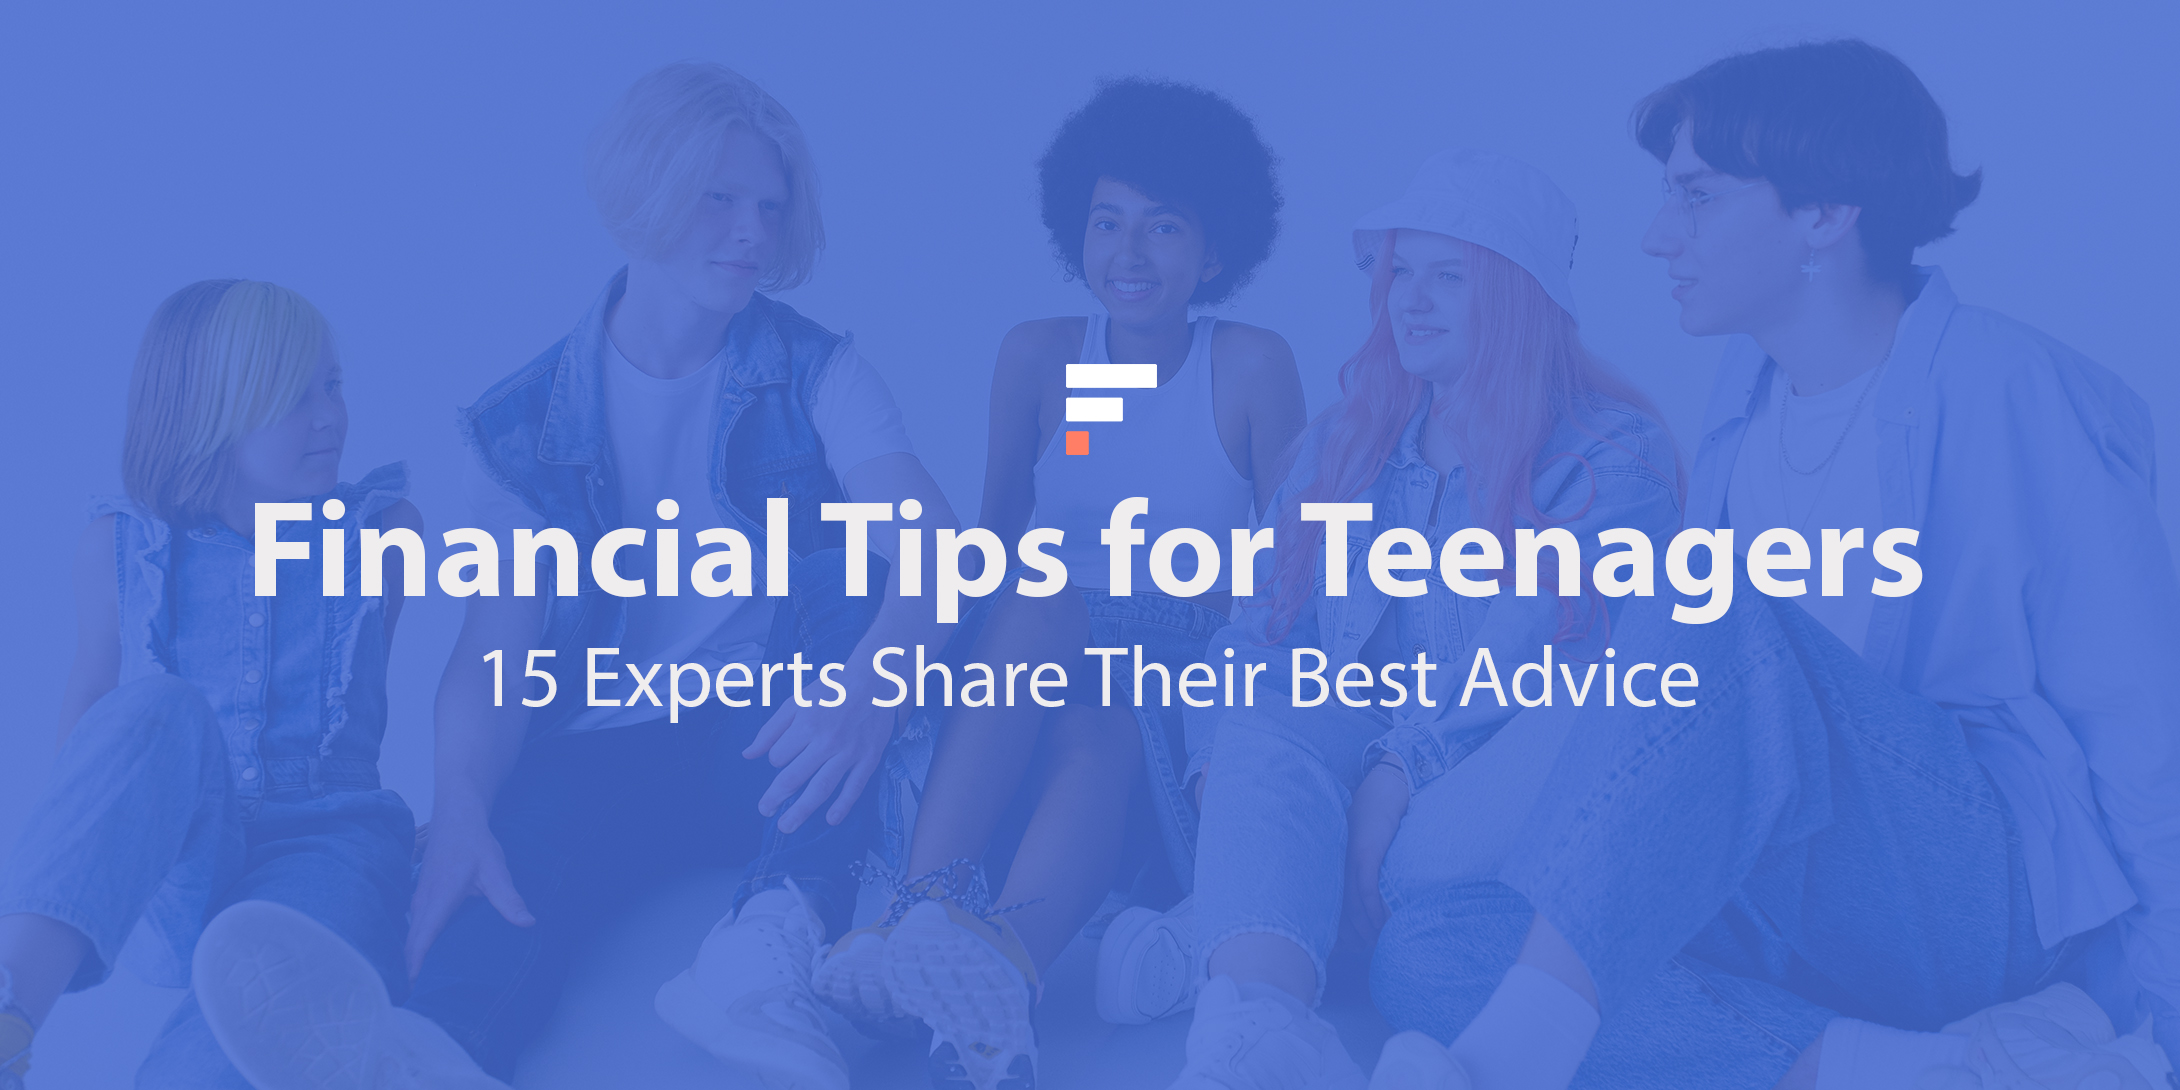 Financial tips for teenagers